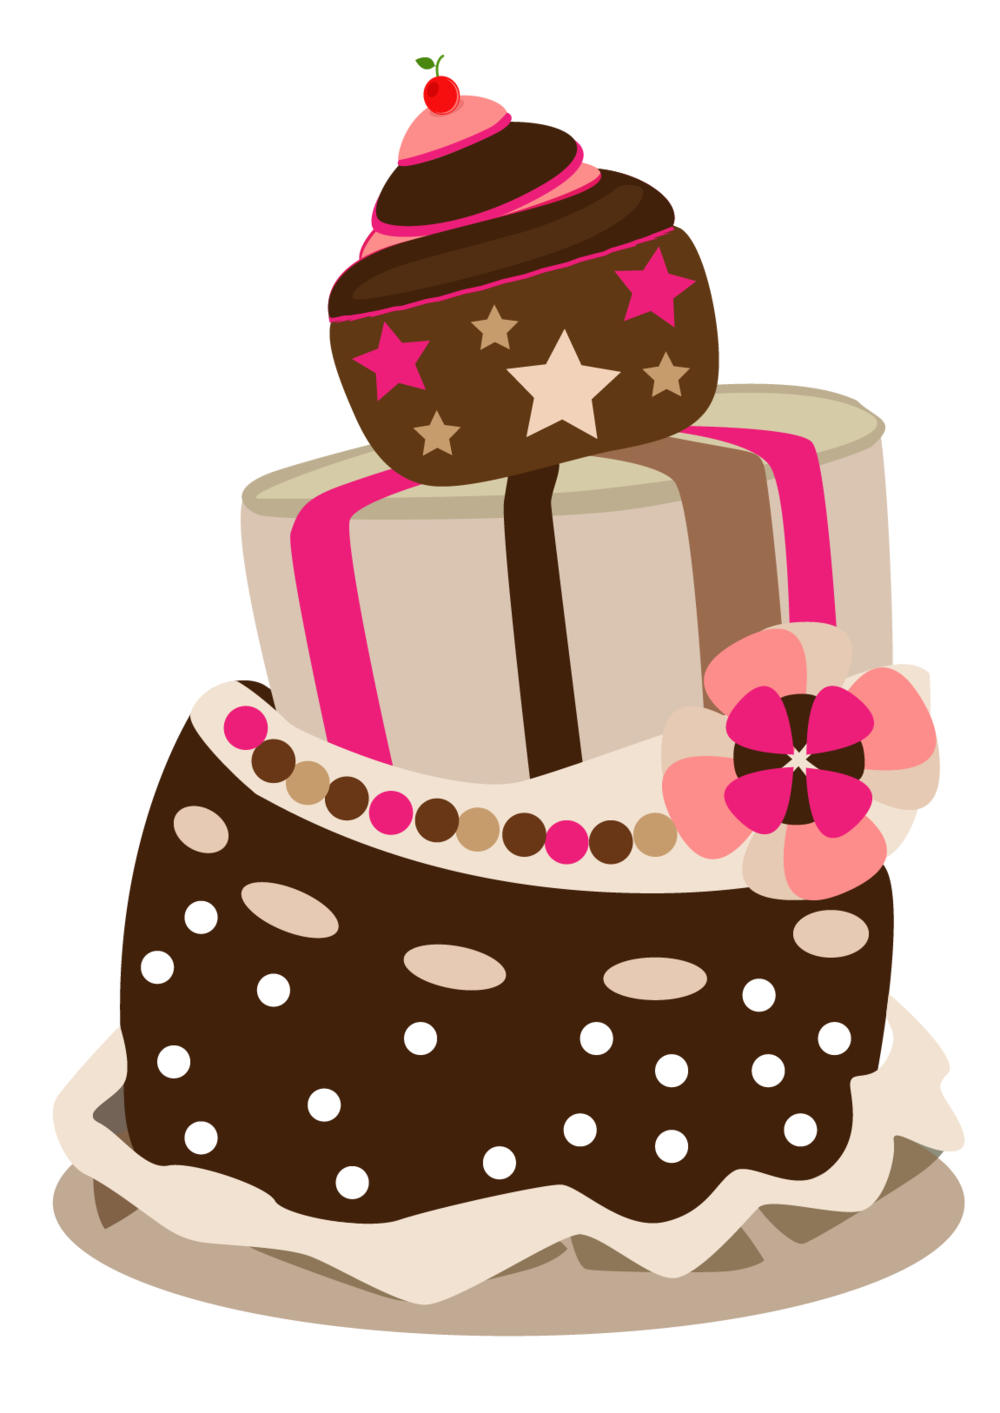 FreeVector-Vector-Birthday-Cake-02.png